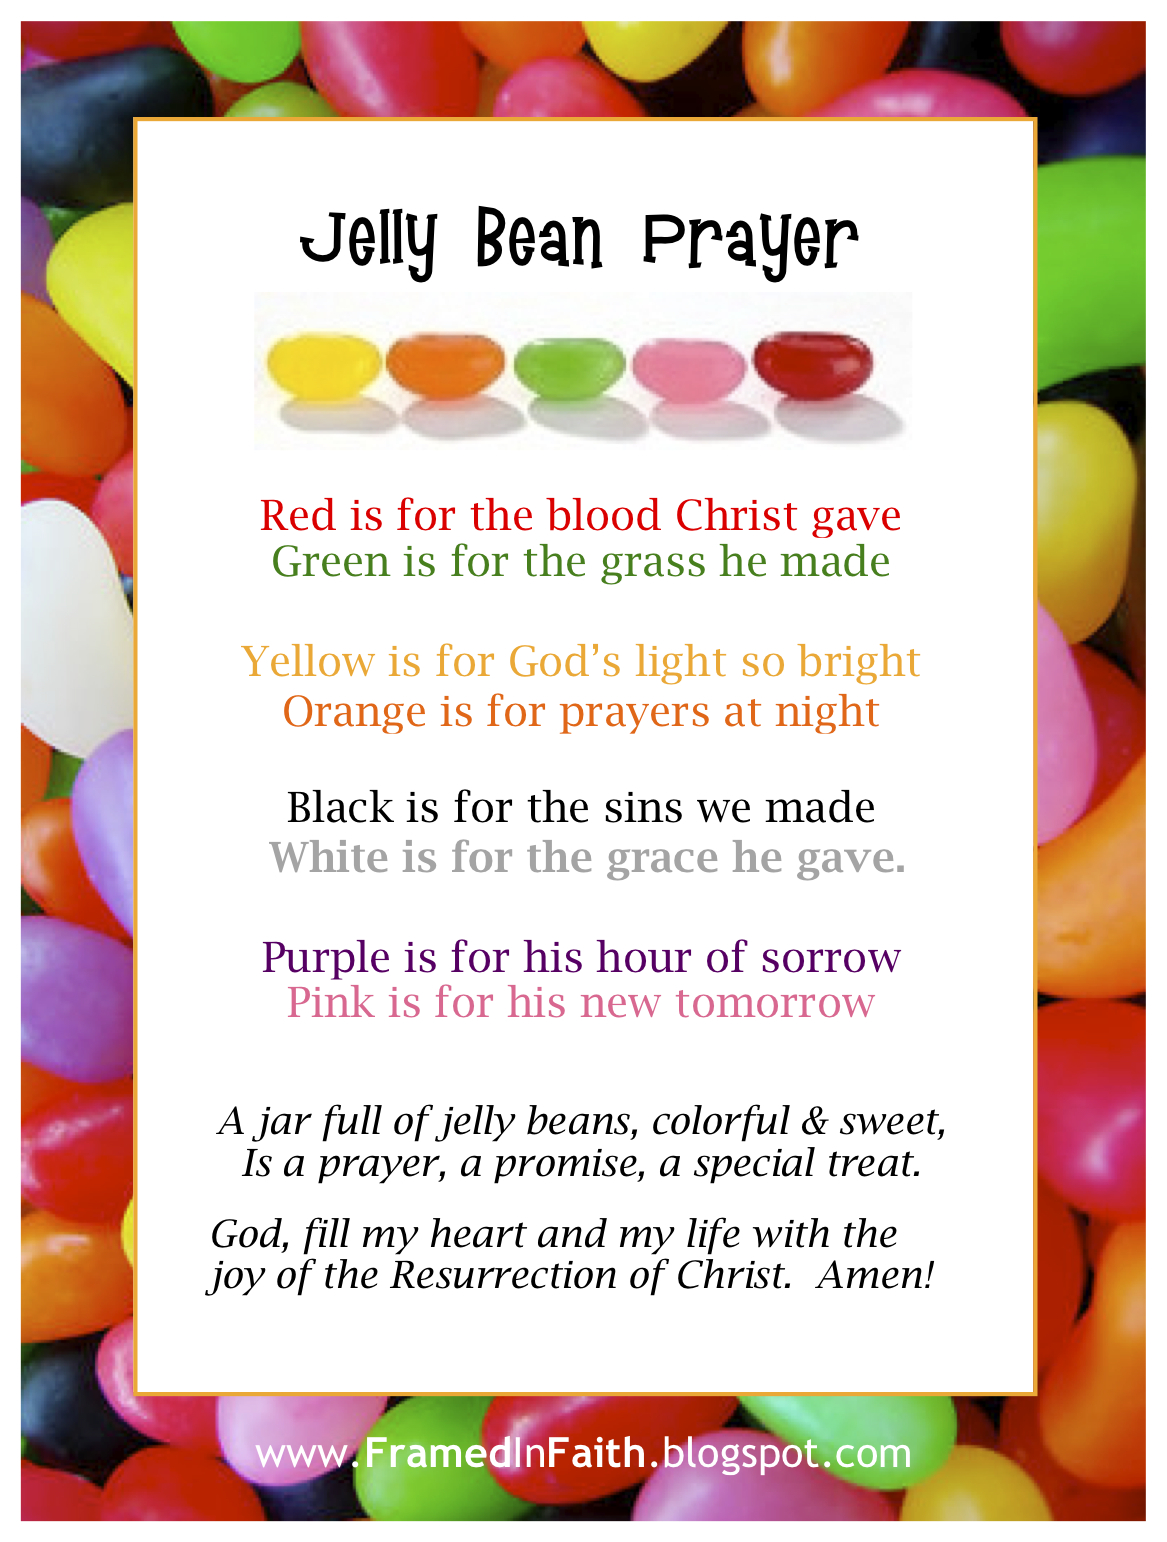 Framed In Faith Jelly Beans Amp Jesus